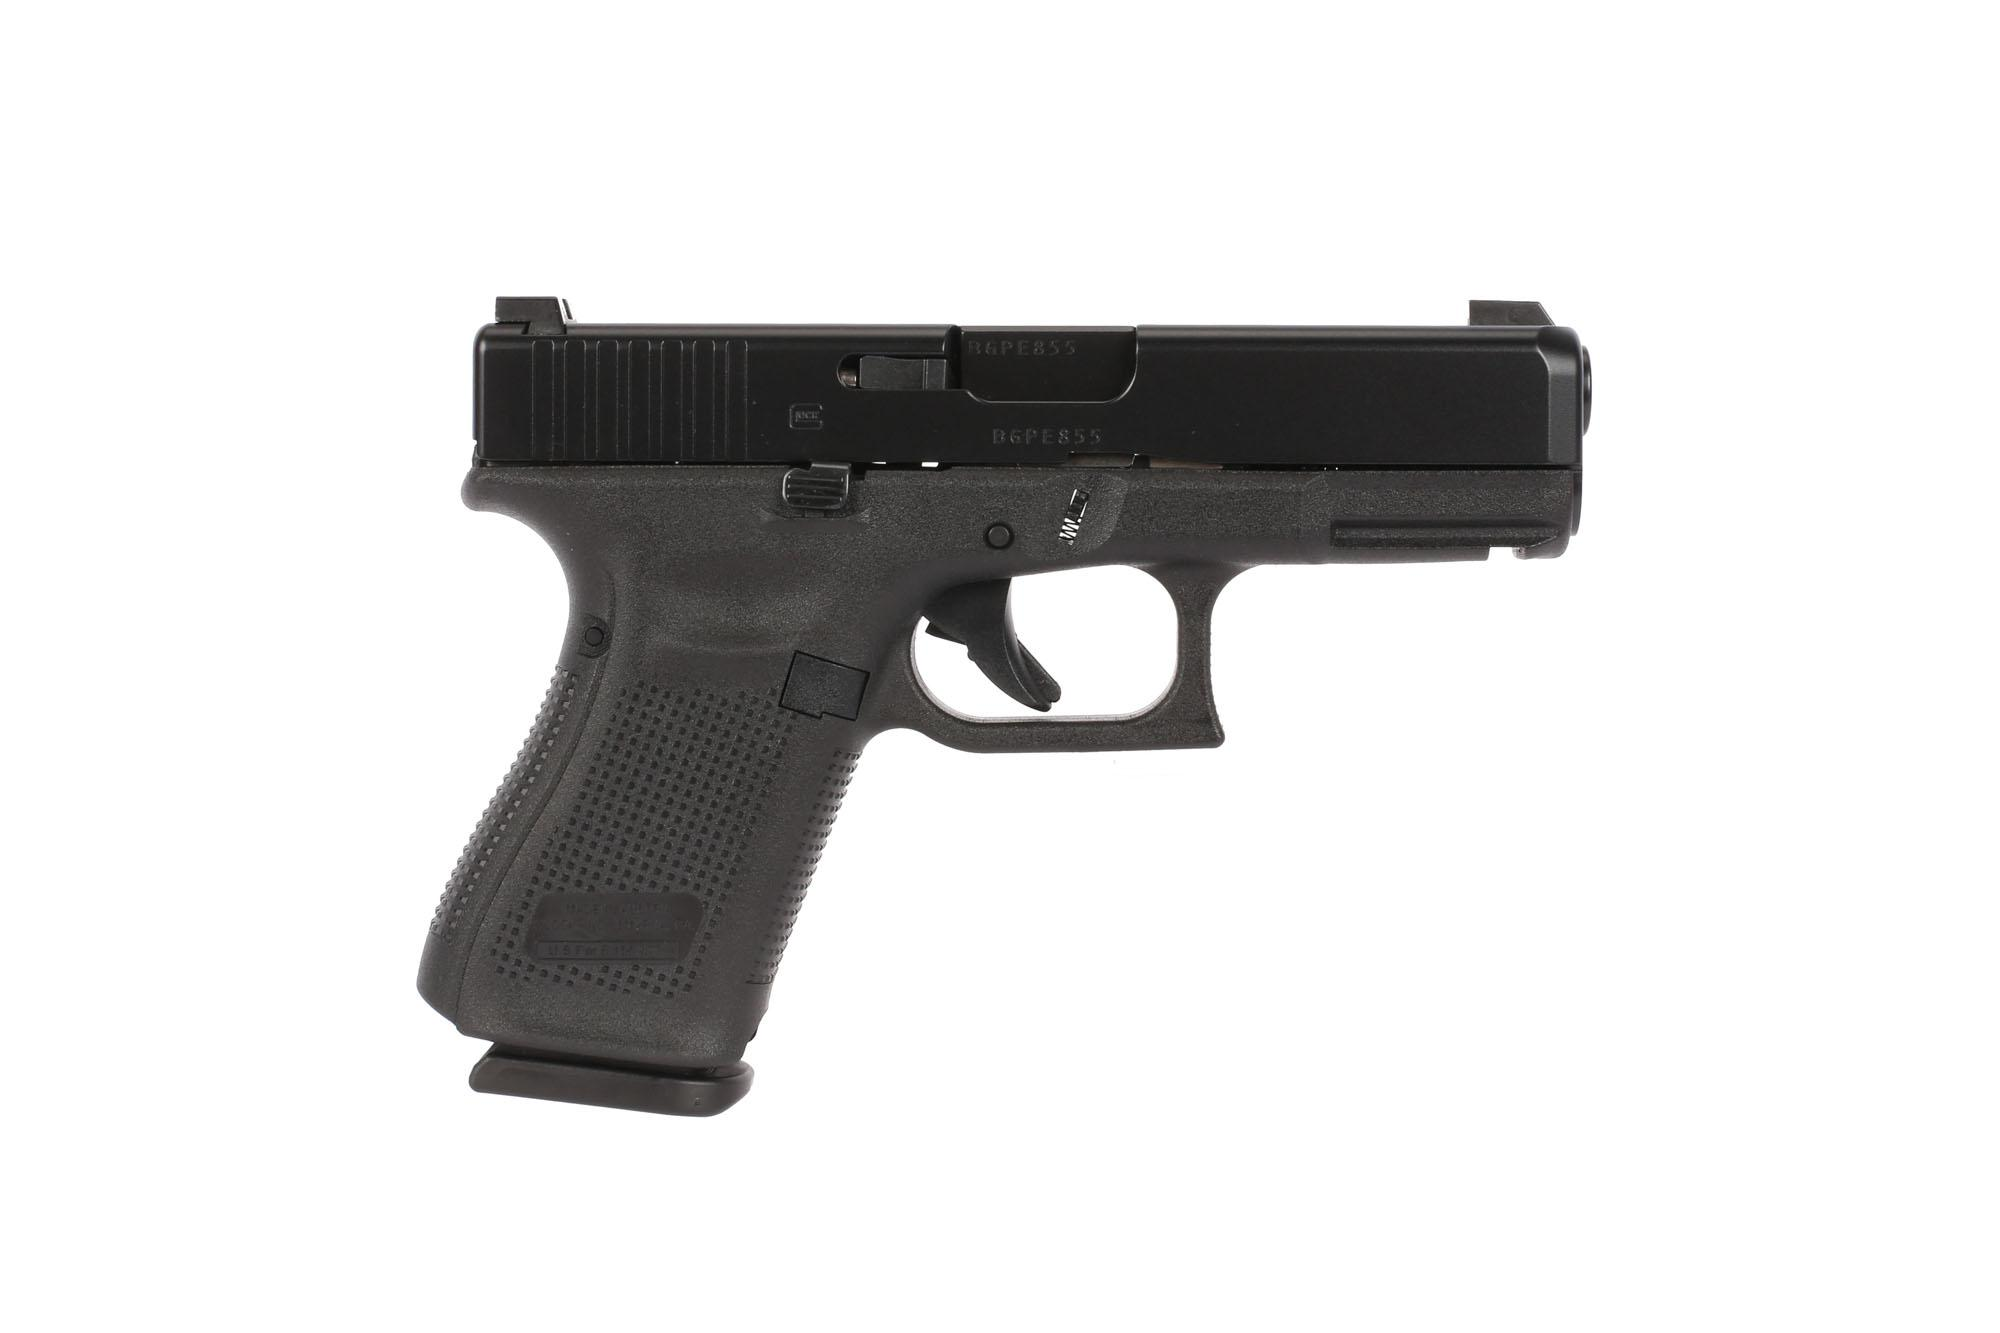 GLOCK G19 Gen5 9mm Compact Pistol - 15-Round - Night Sights